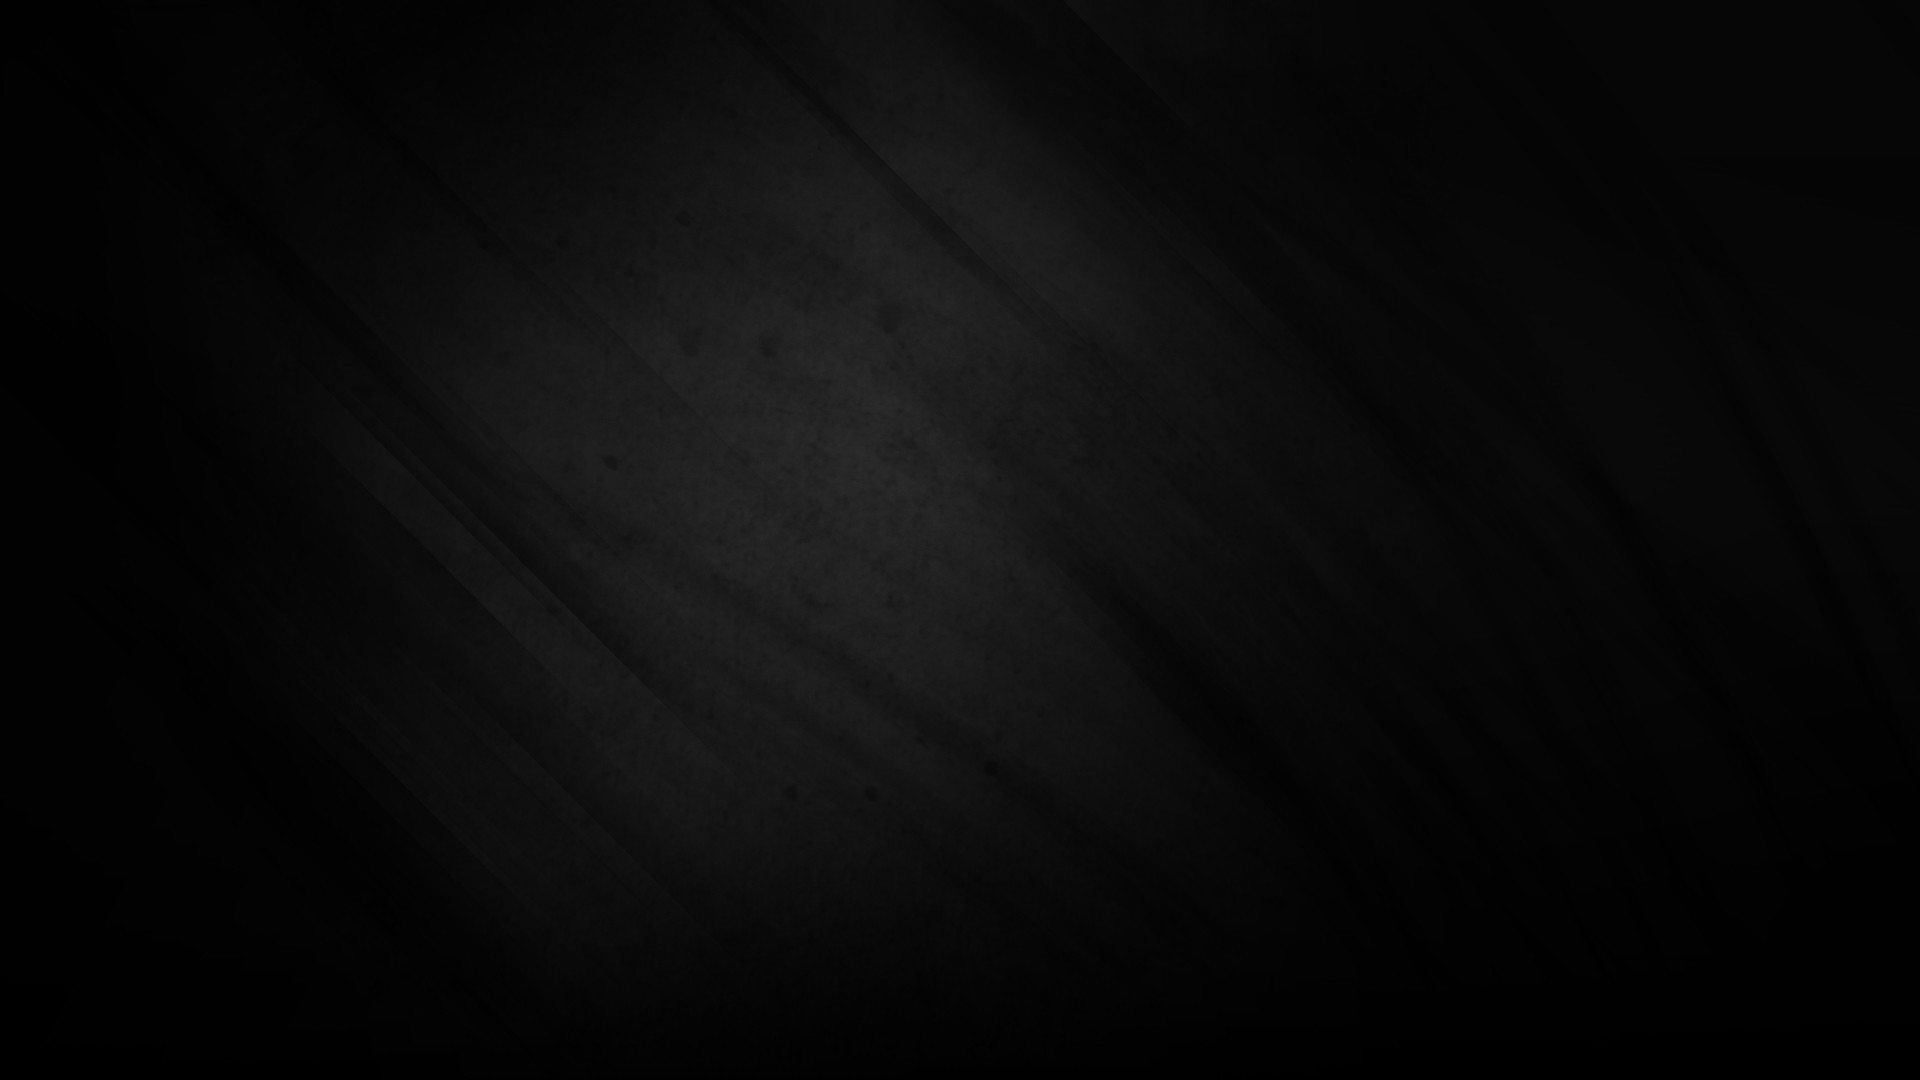 Solid Black Wallpaper 1920x1080 Posted By Christopher Sellers